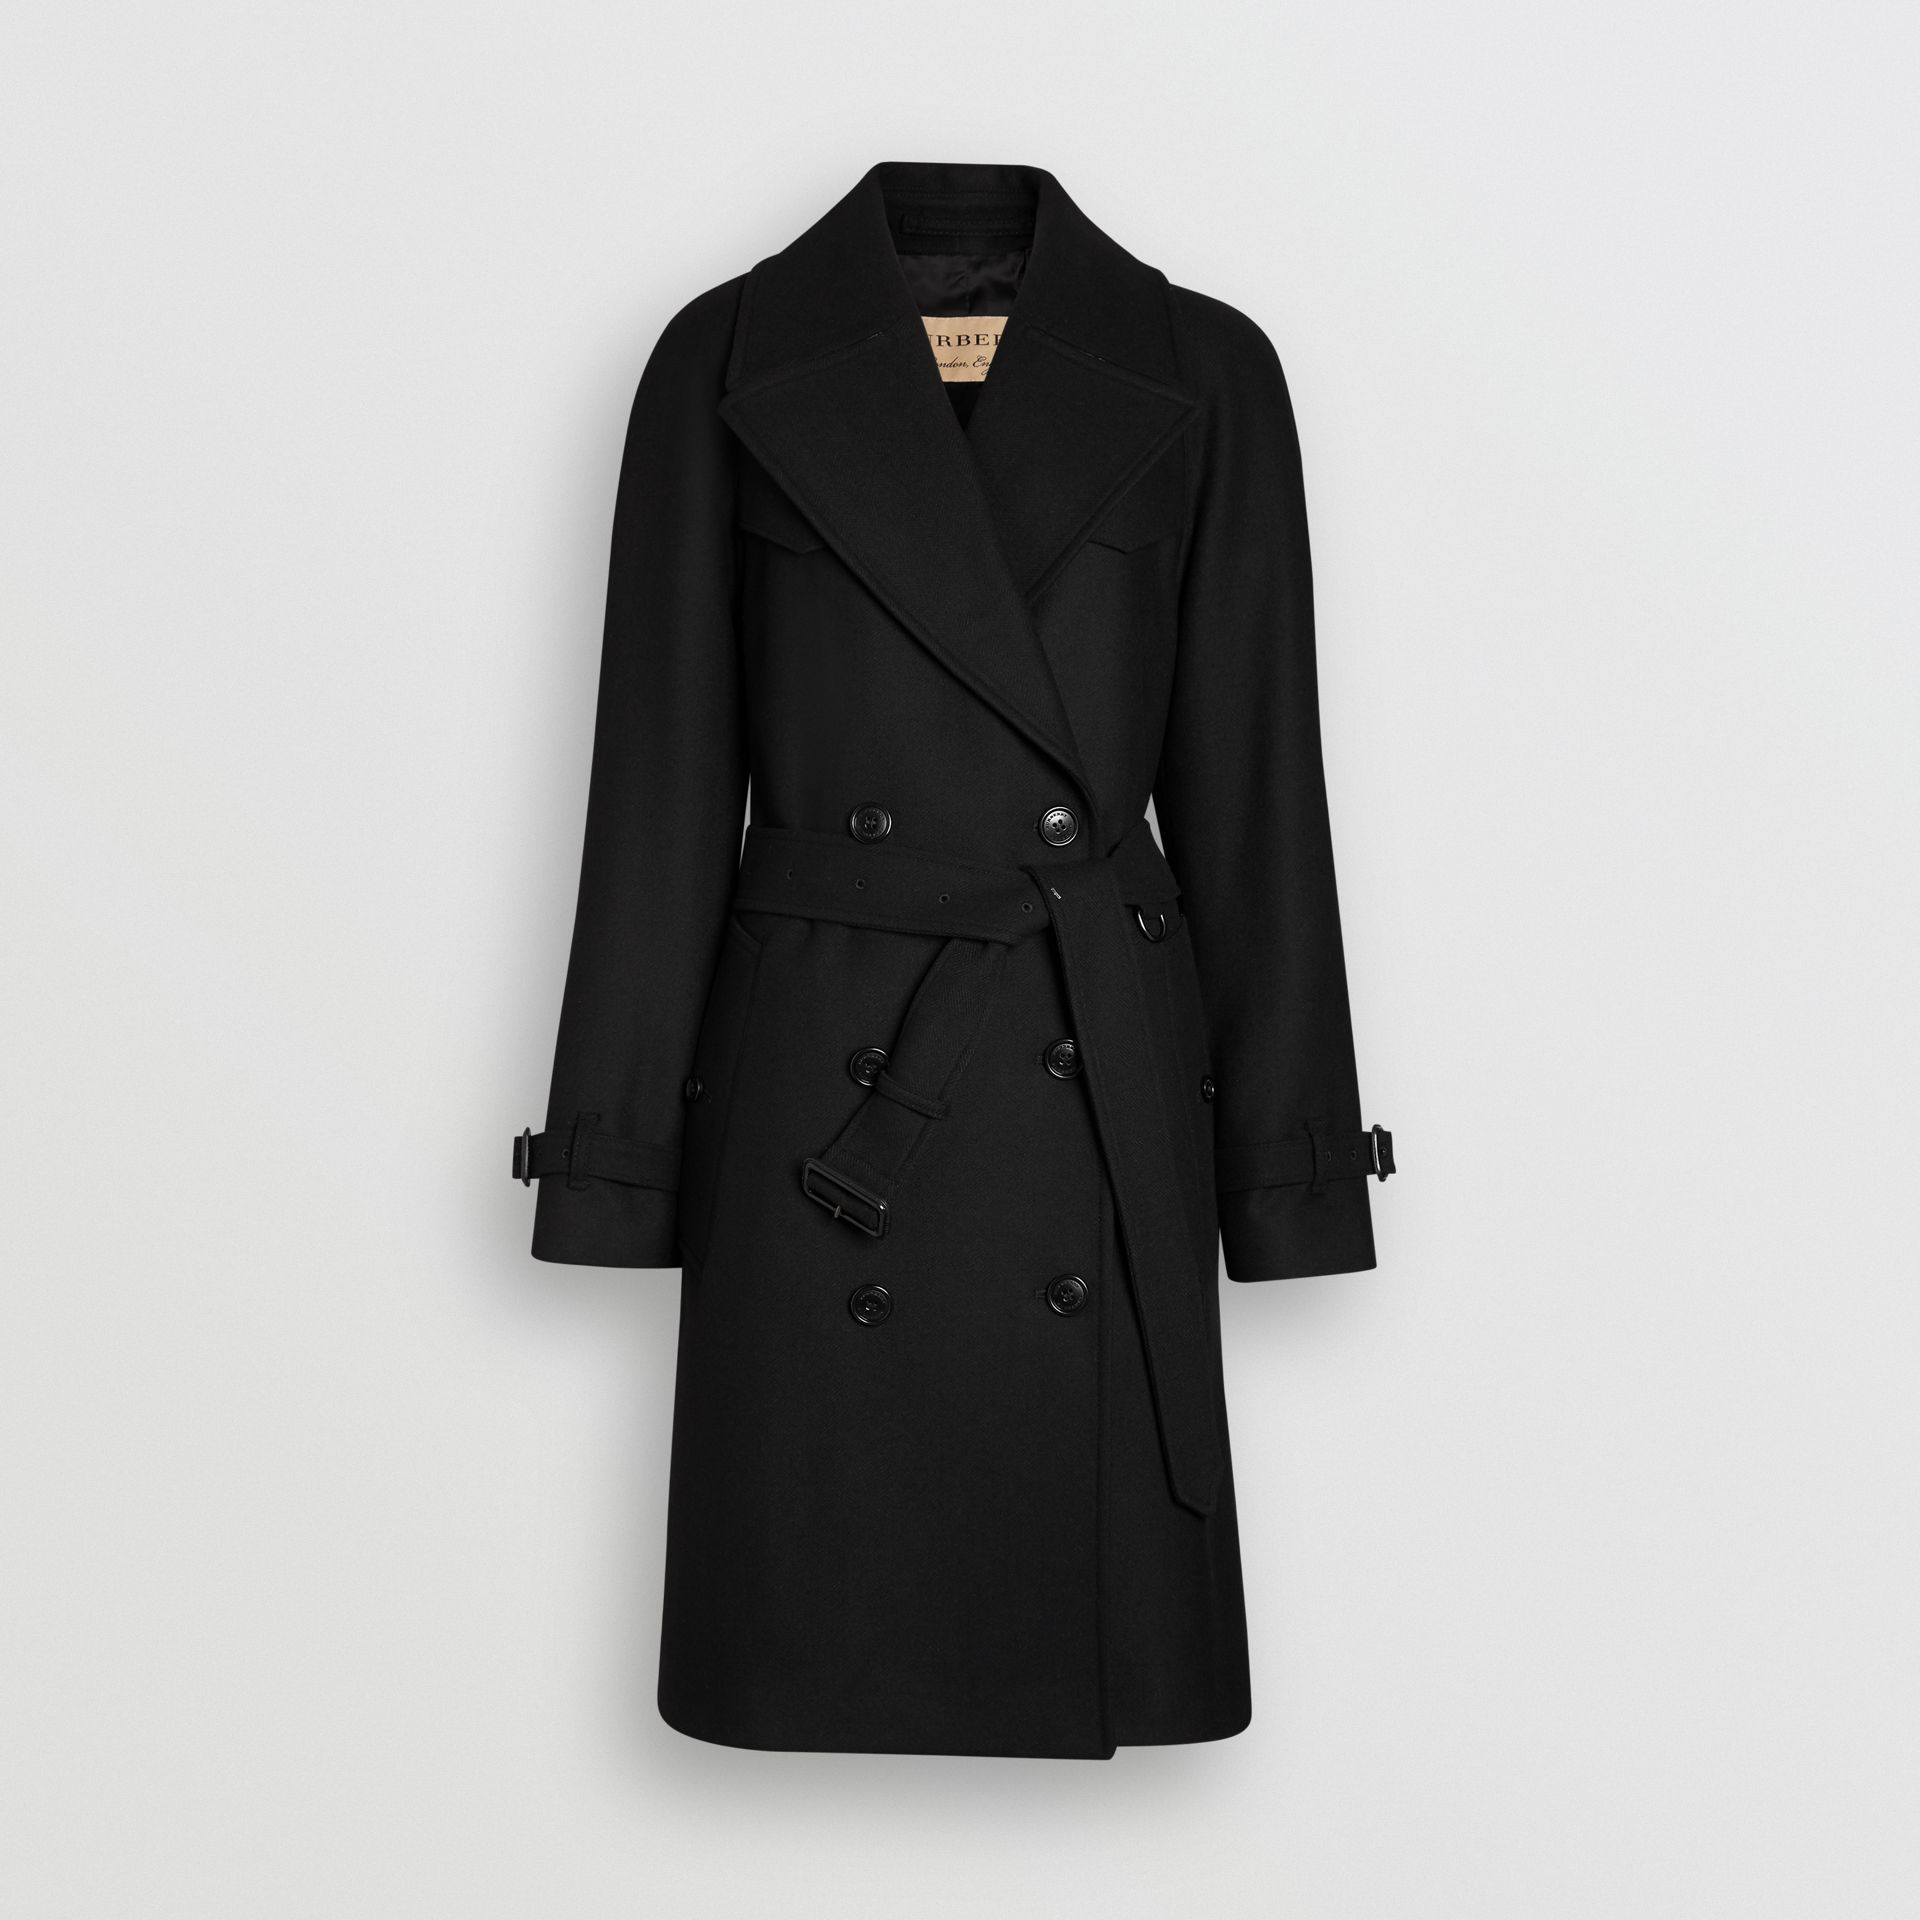 Herringbone Wool Cashmere Blend Trench Coat in Black - Women | Burberry - gallery image 3